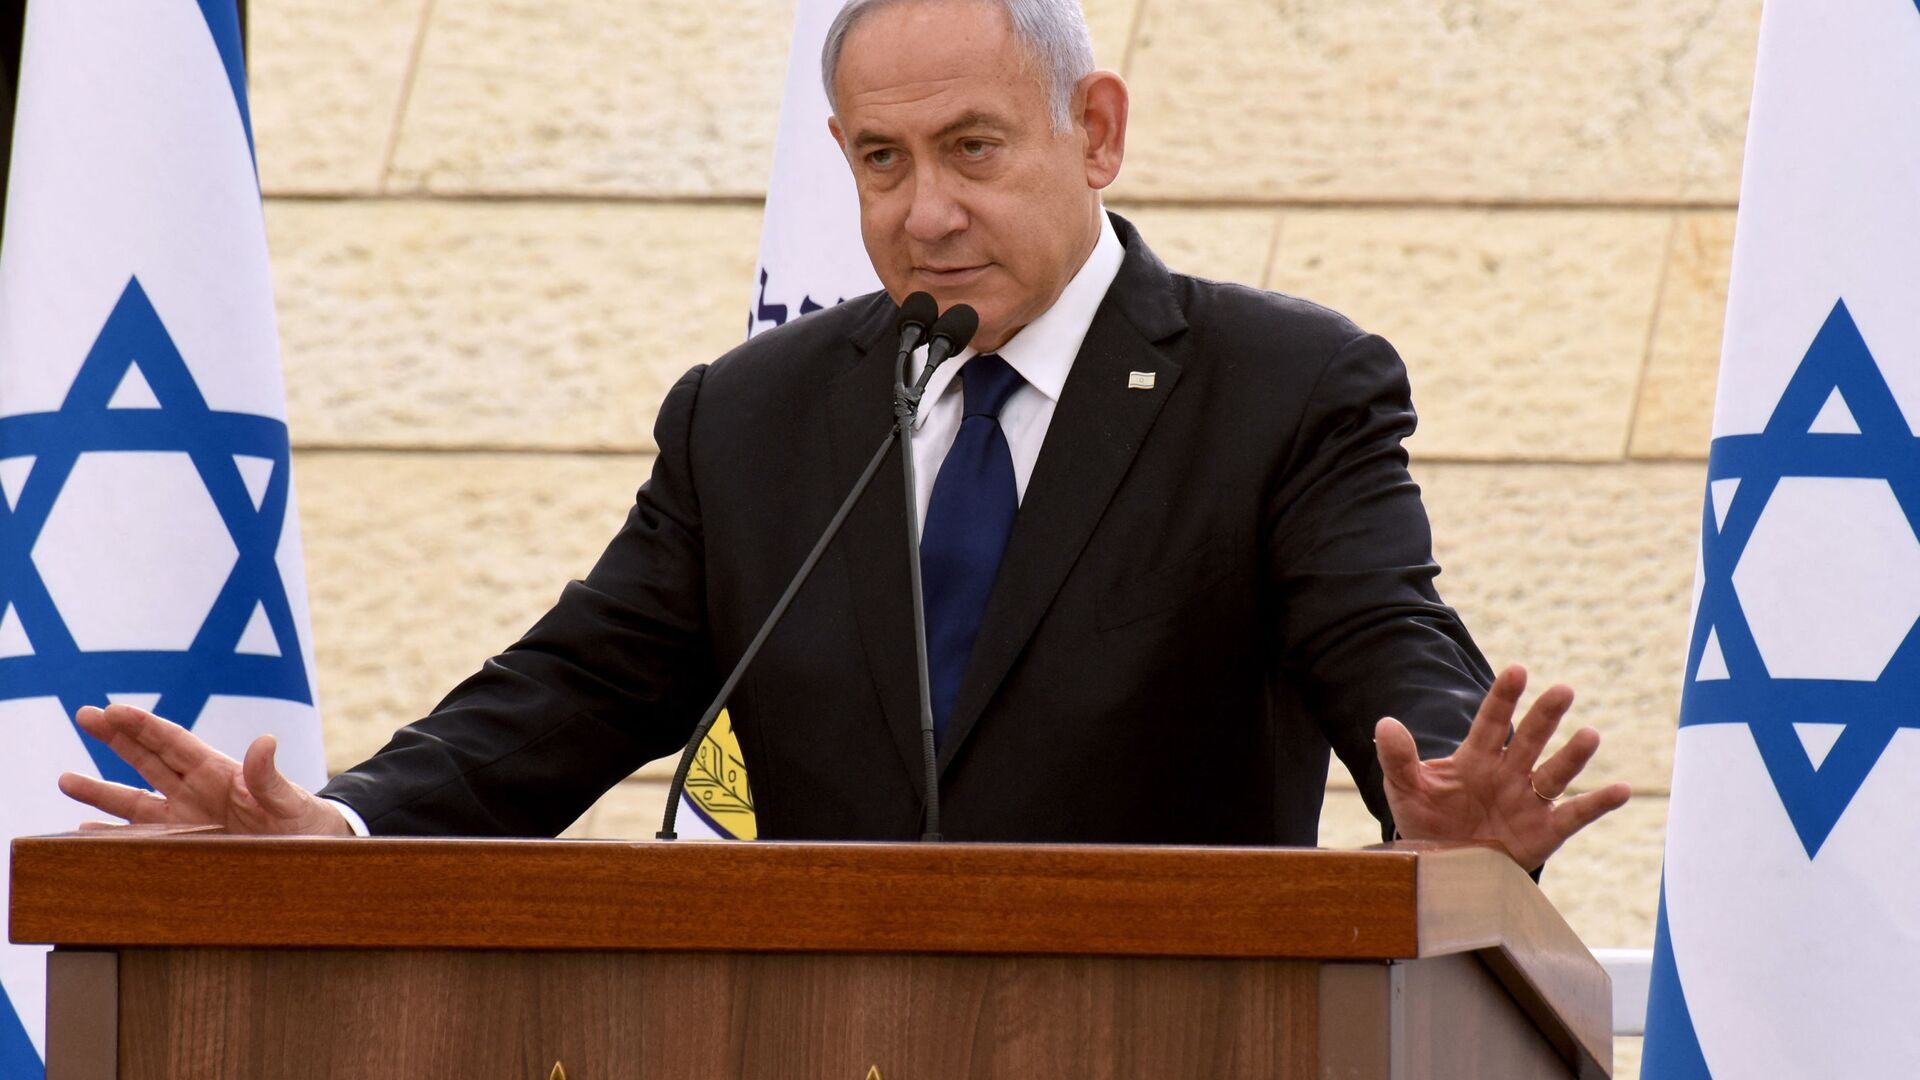 In this file photo taken on April 13, 2021 Israeli Prime Minister Benjamin Netanyahu speaks during a ceremony to mark Yom HaZikaron, Israel's Memorial Day for fallen soldiers, at the Yad LeBanim House in Jerusalem. - Netanyahu's mandate to form a government following an inconclusive election expired on May 5, 2021 giving his rivals a chance to take power and end the divisive premier's record tenure.  - Sputnik Italia, 1920, 03.08.2021